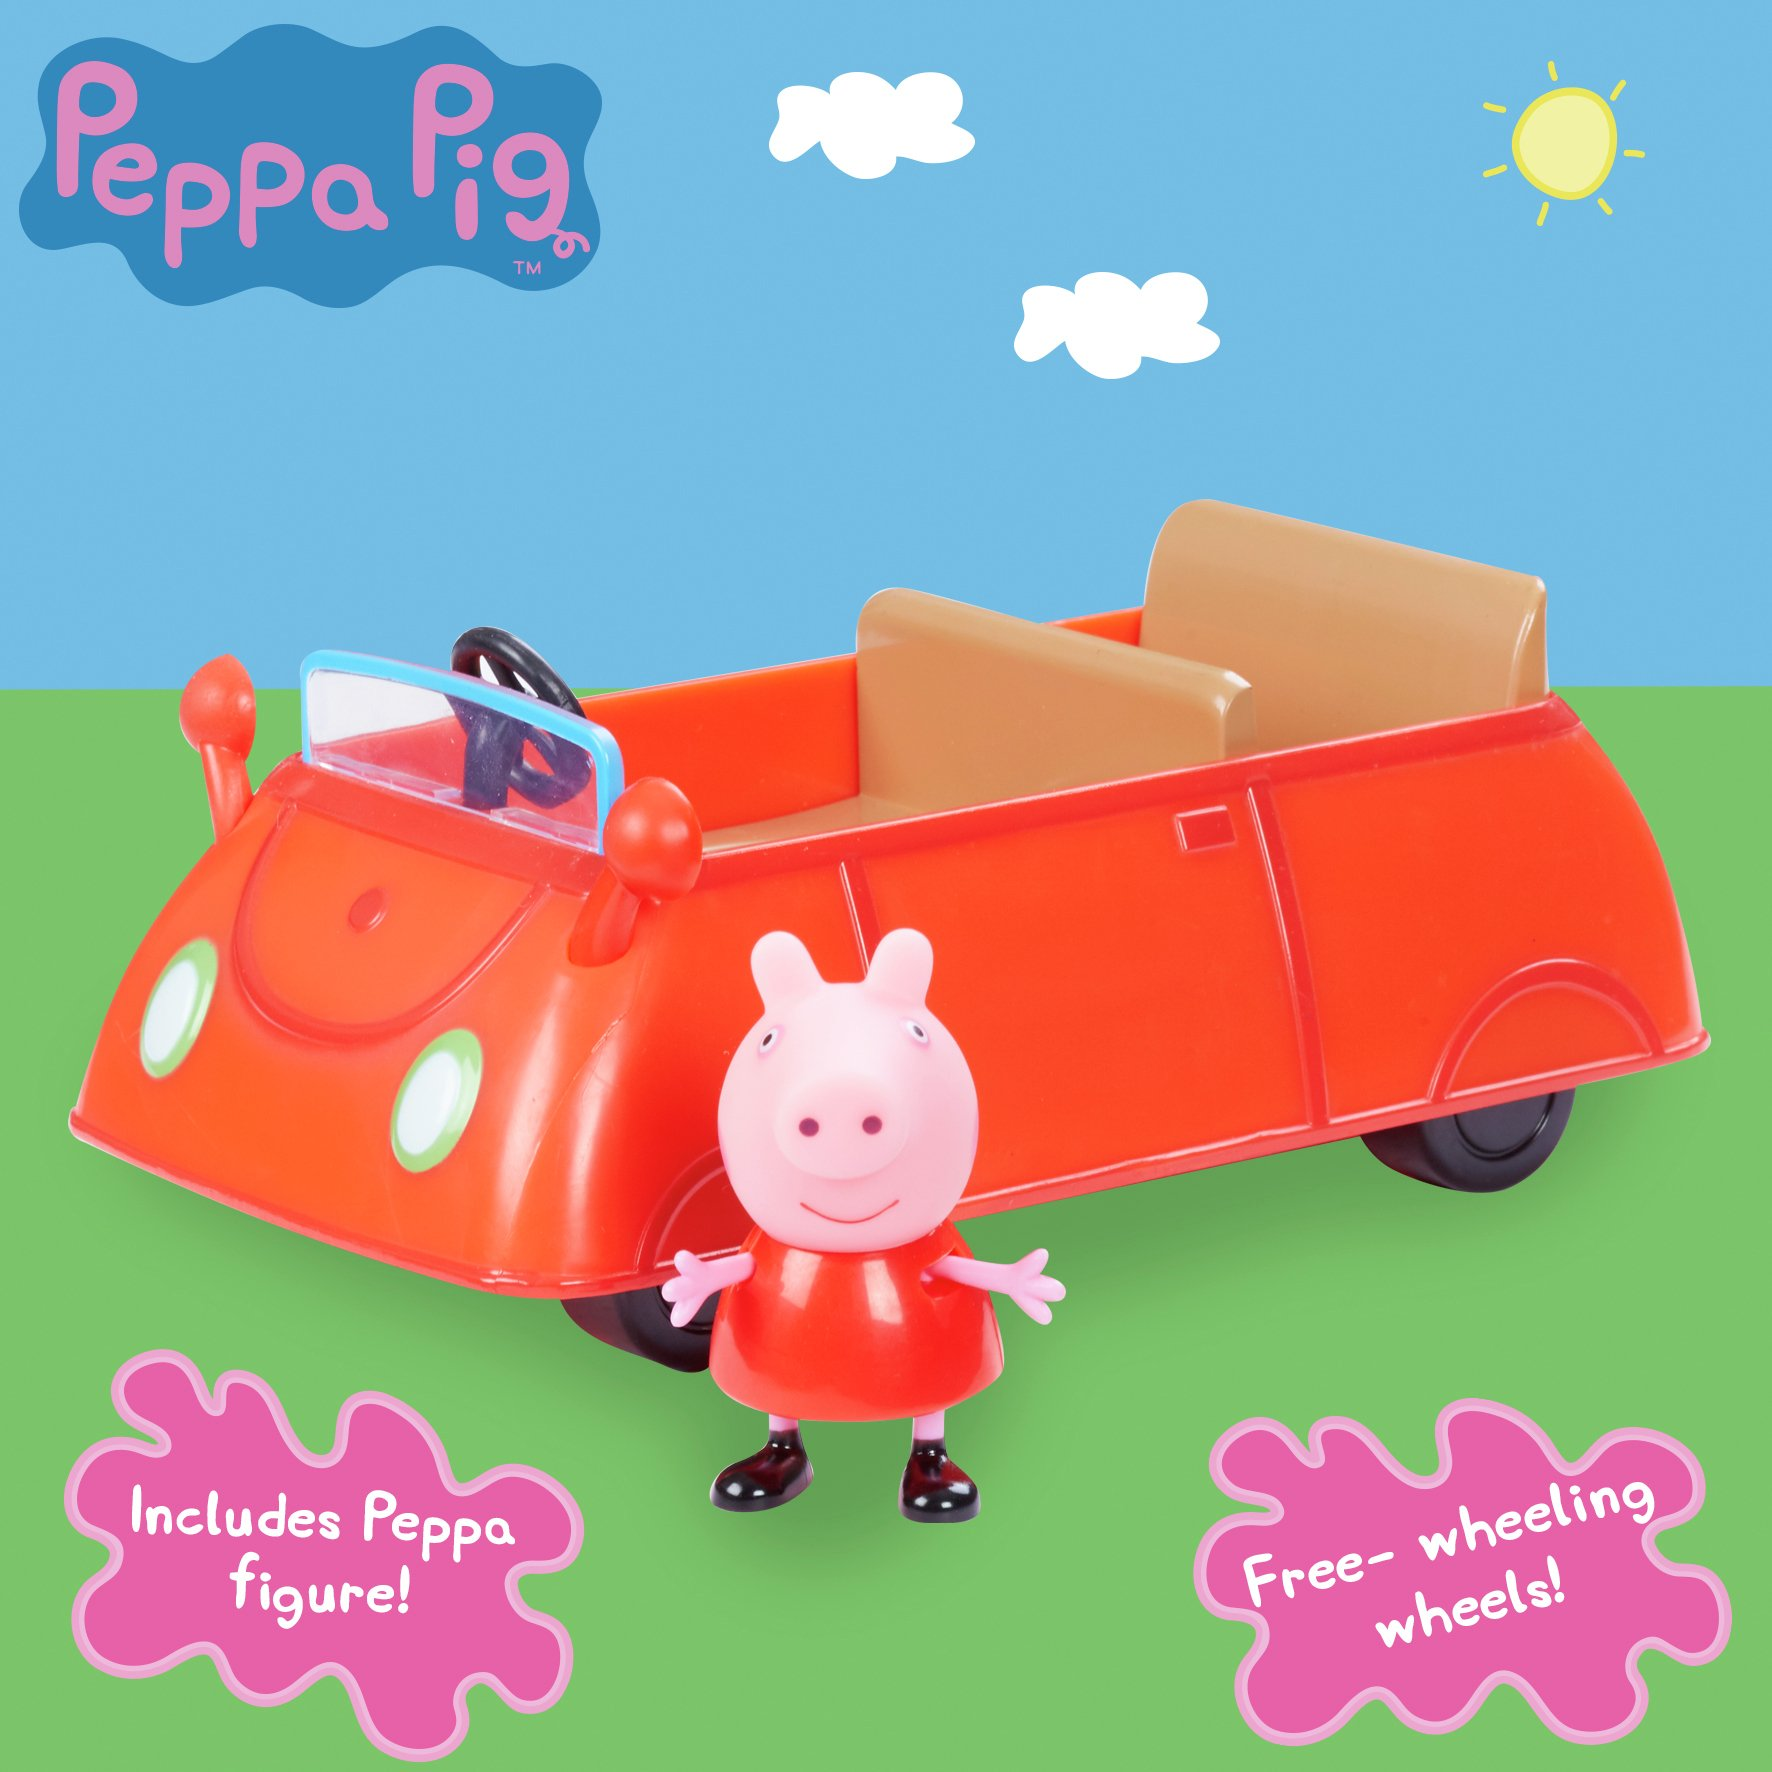 Peppa Pig Classic Car from Peppa pig